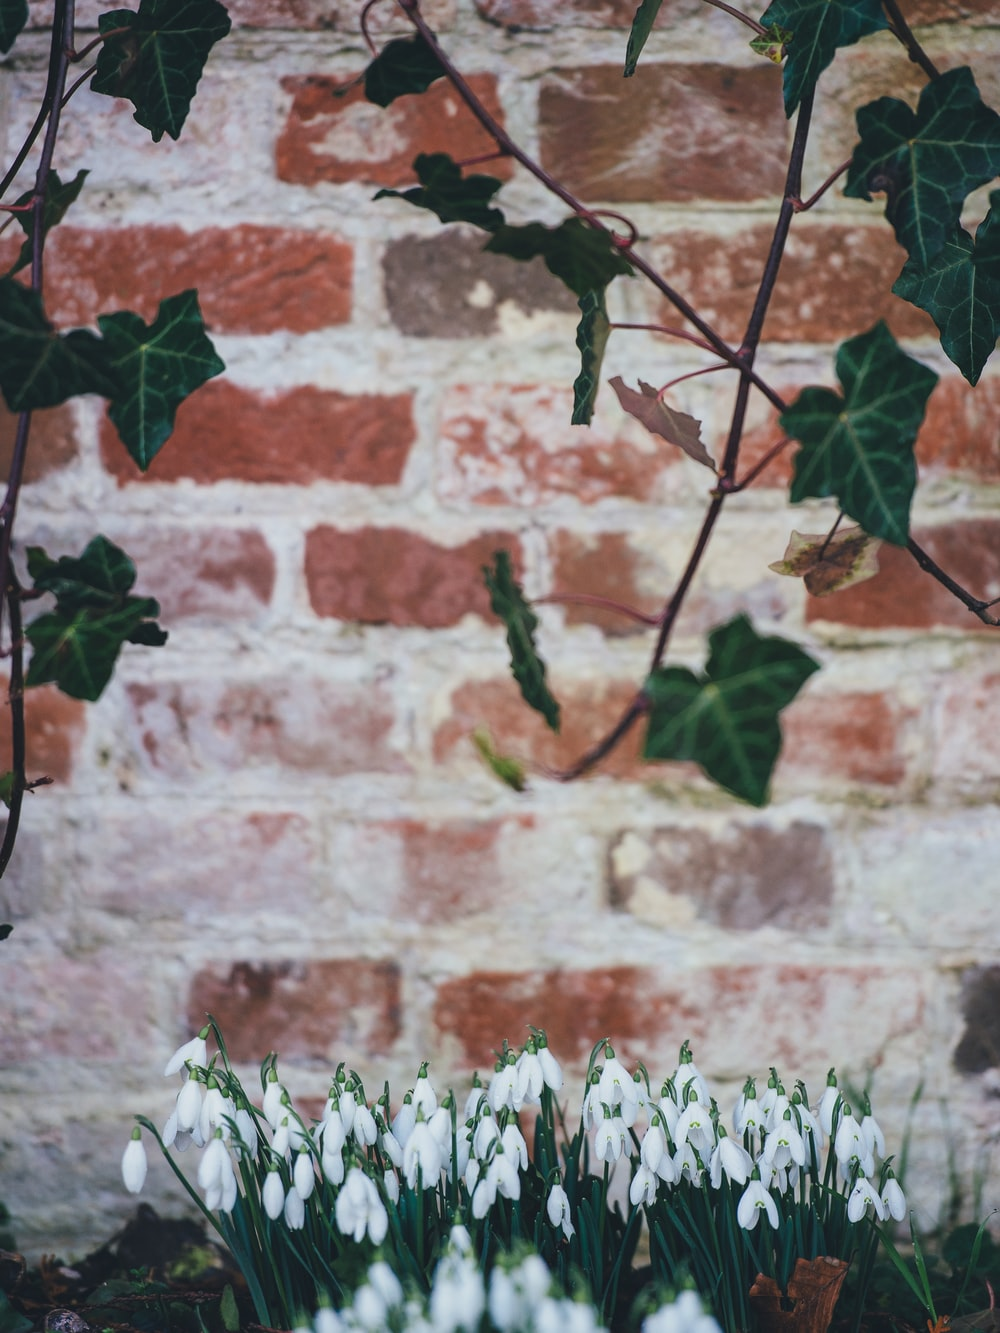 green leafed vine plant and white tulips in selective focus photography